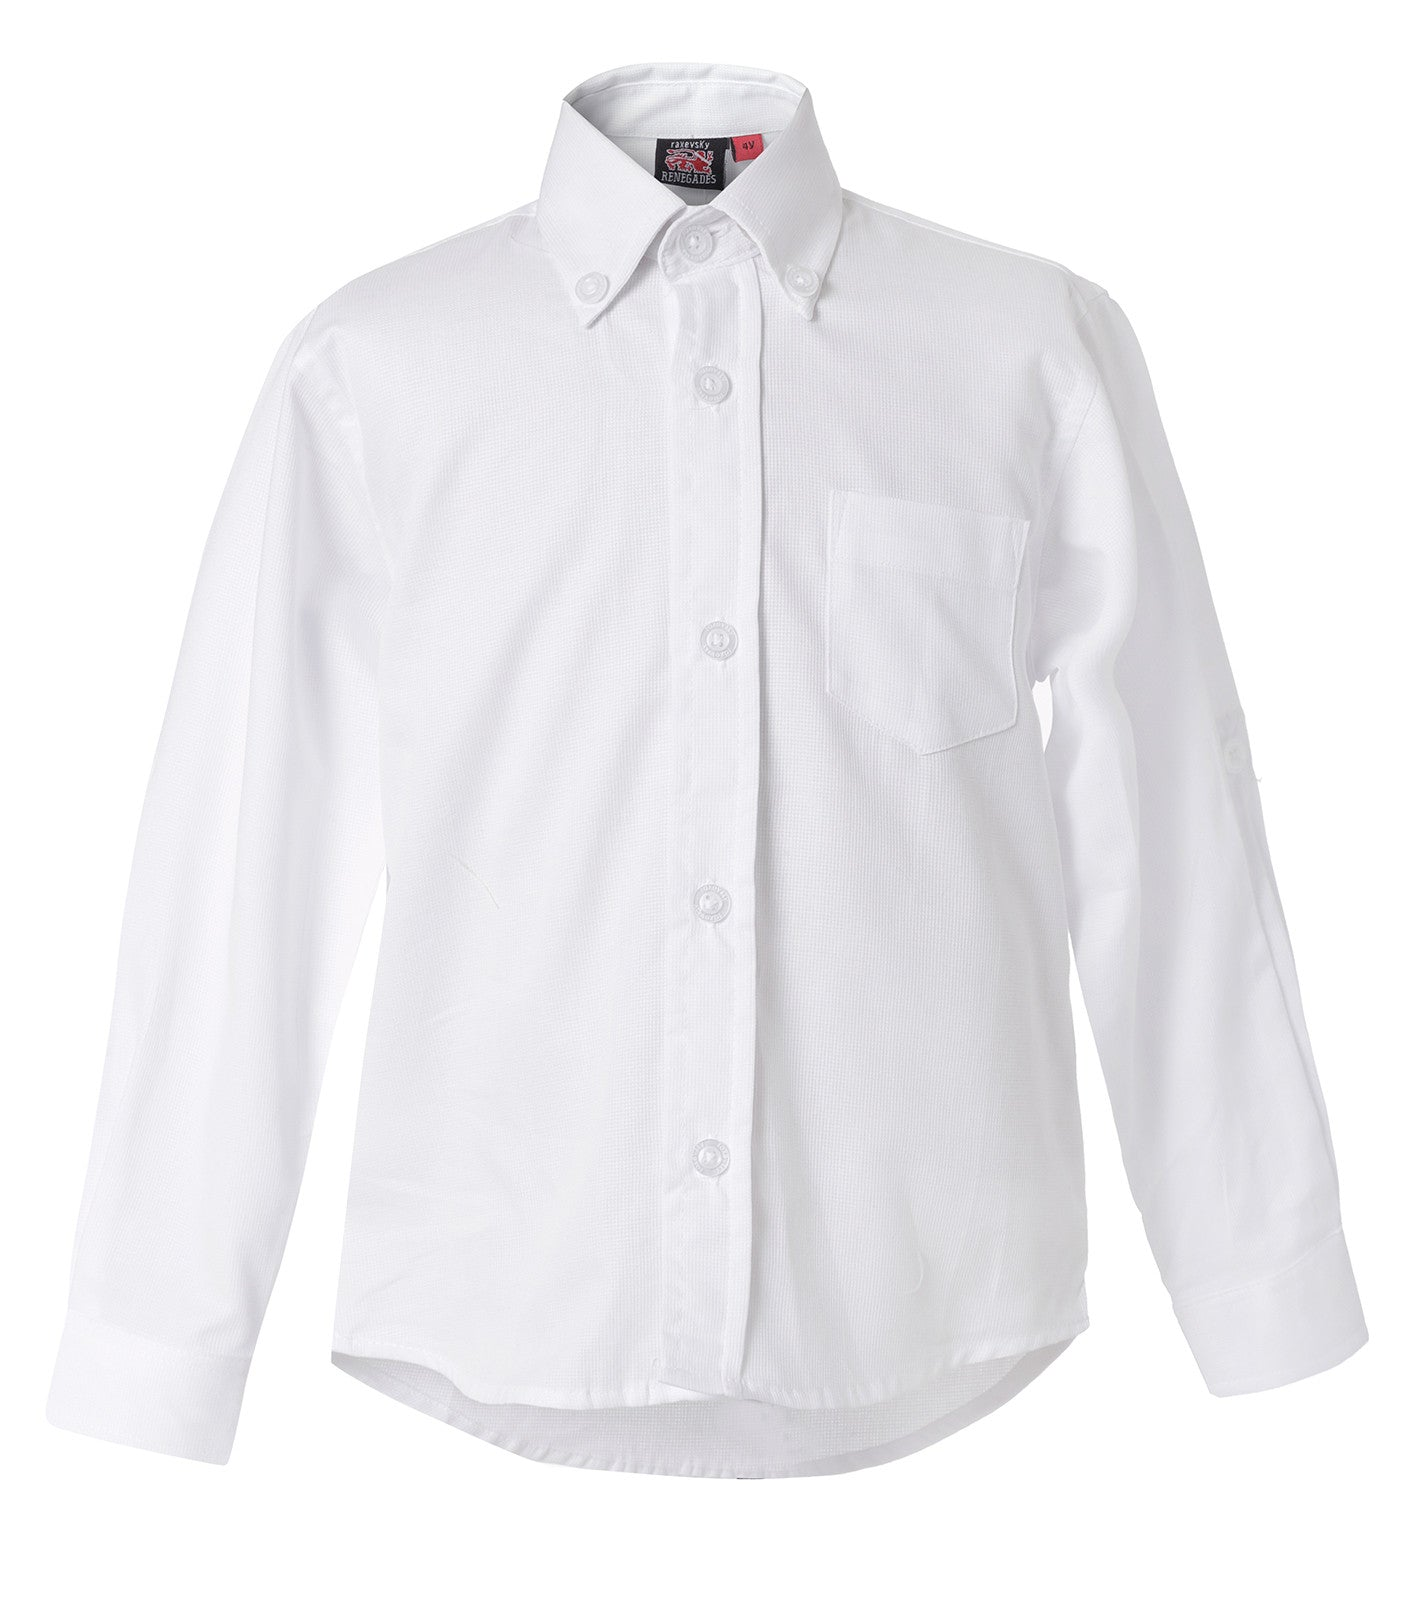 Formal Shirt in white for boys